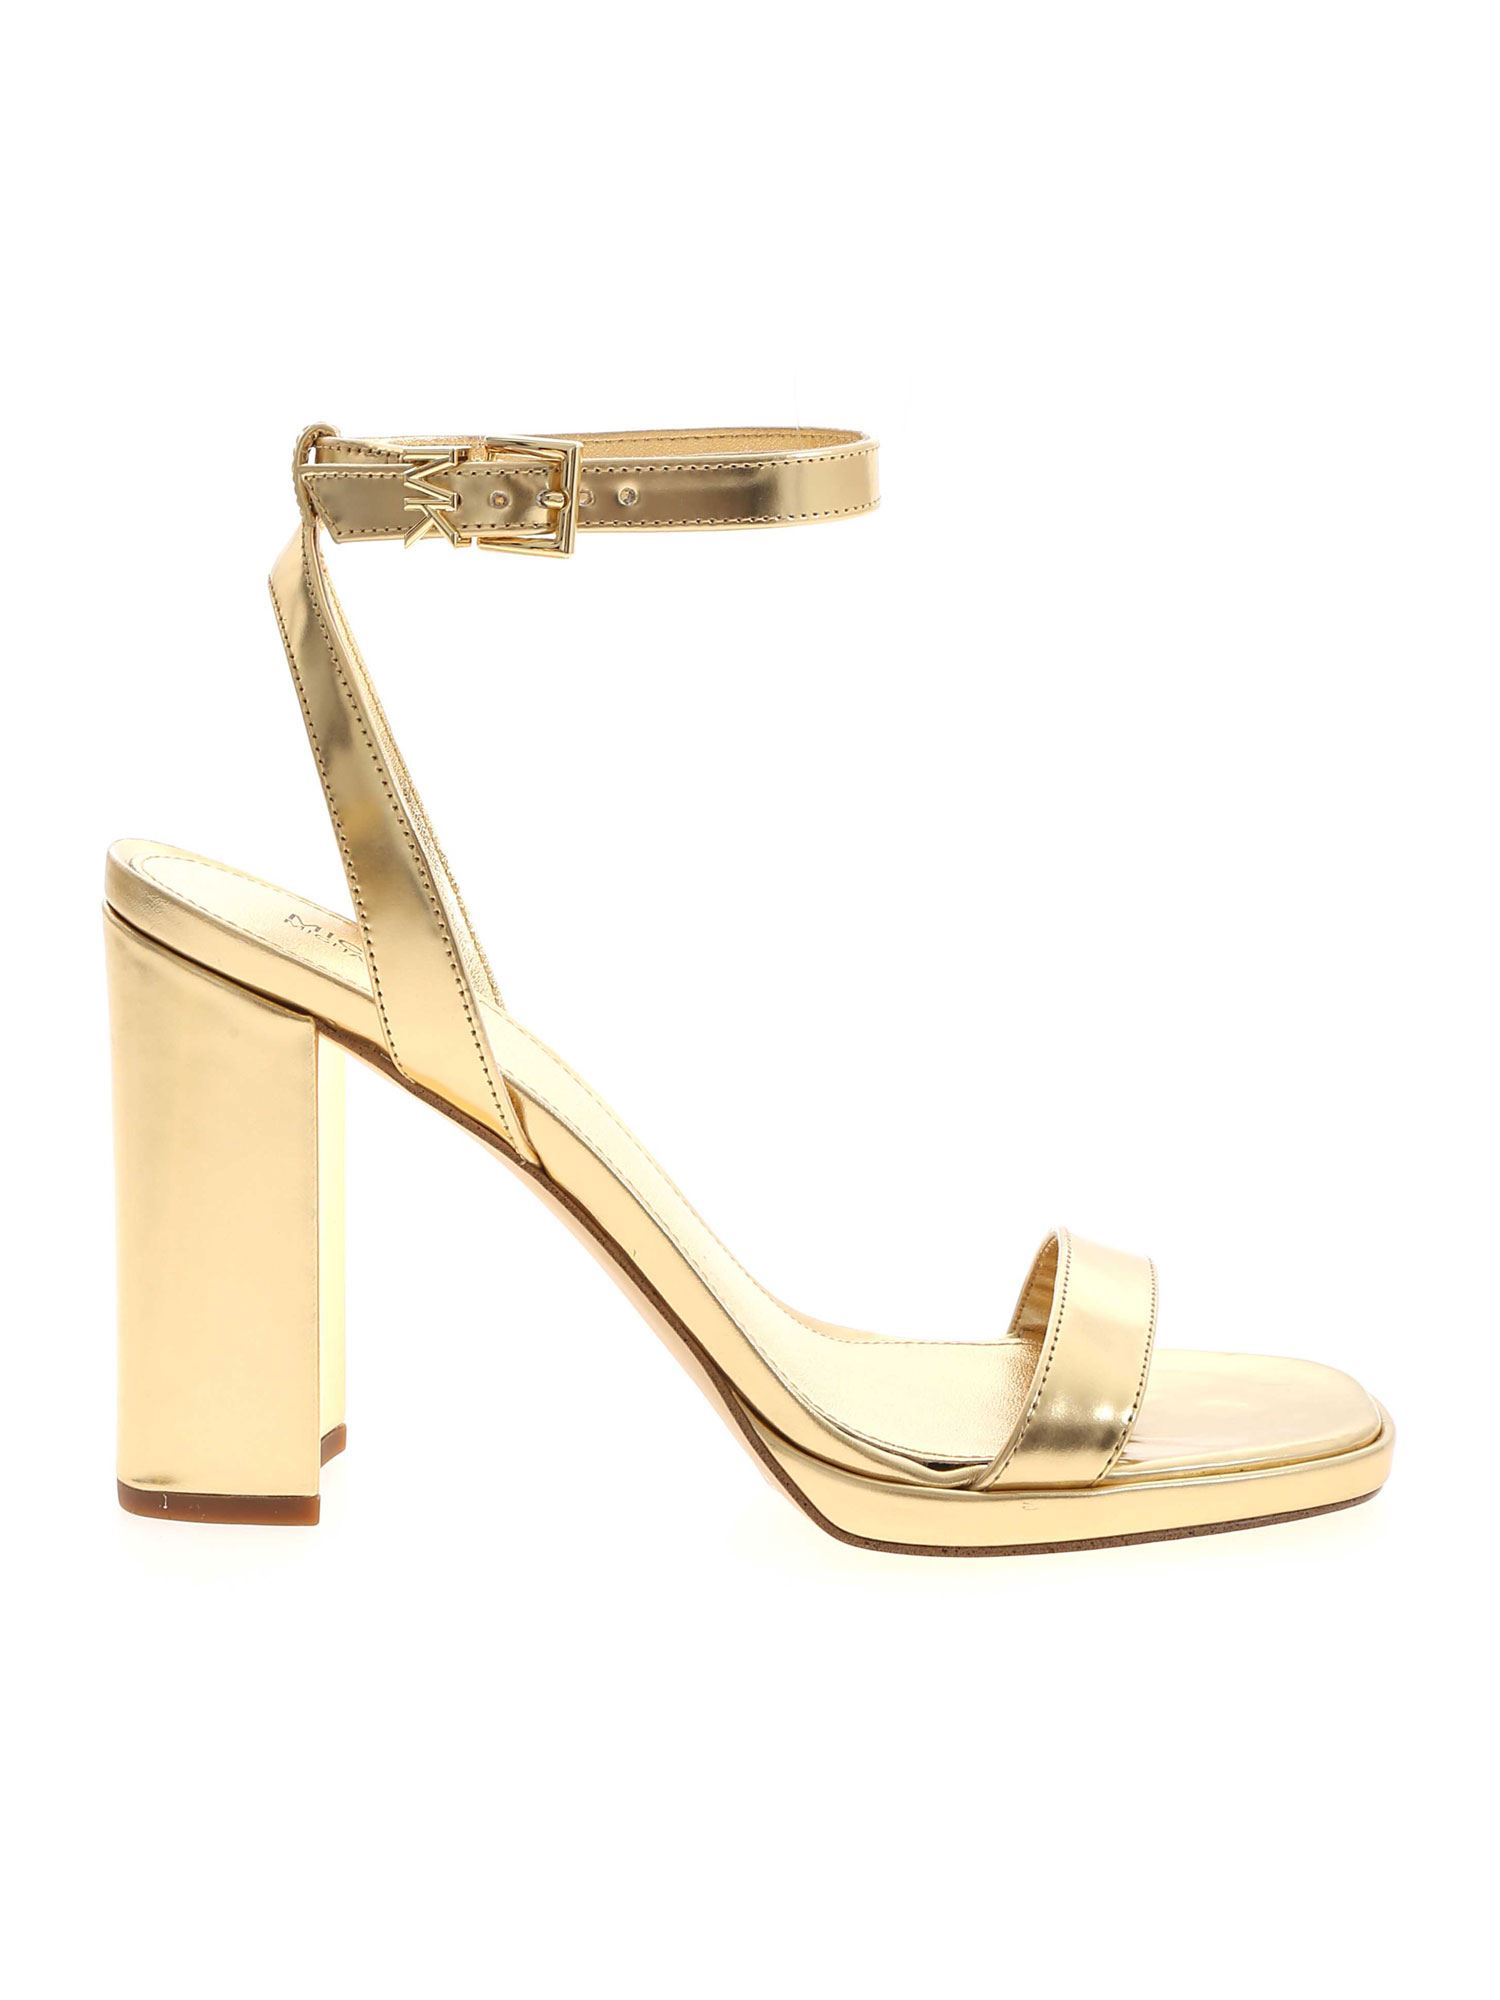 Michael Kors ANGELA SANDALS IN GOLDEN COLOR